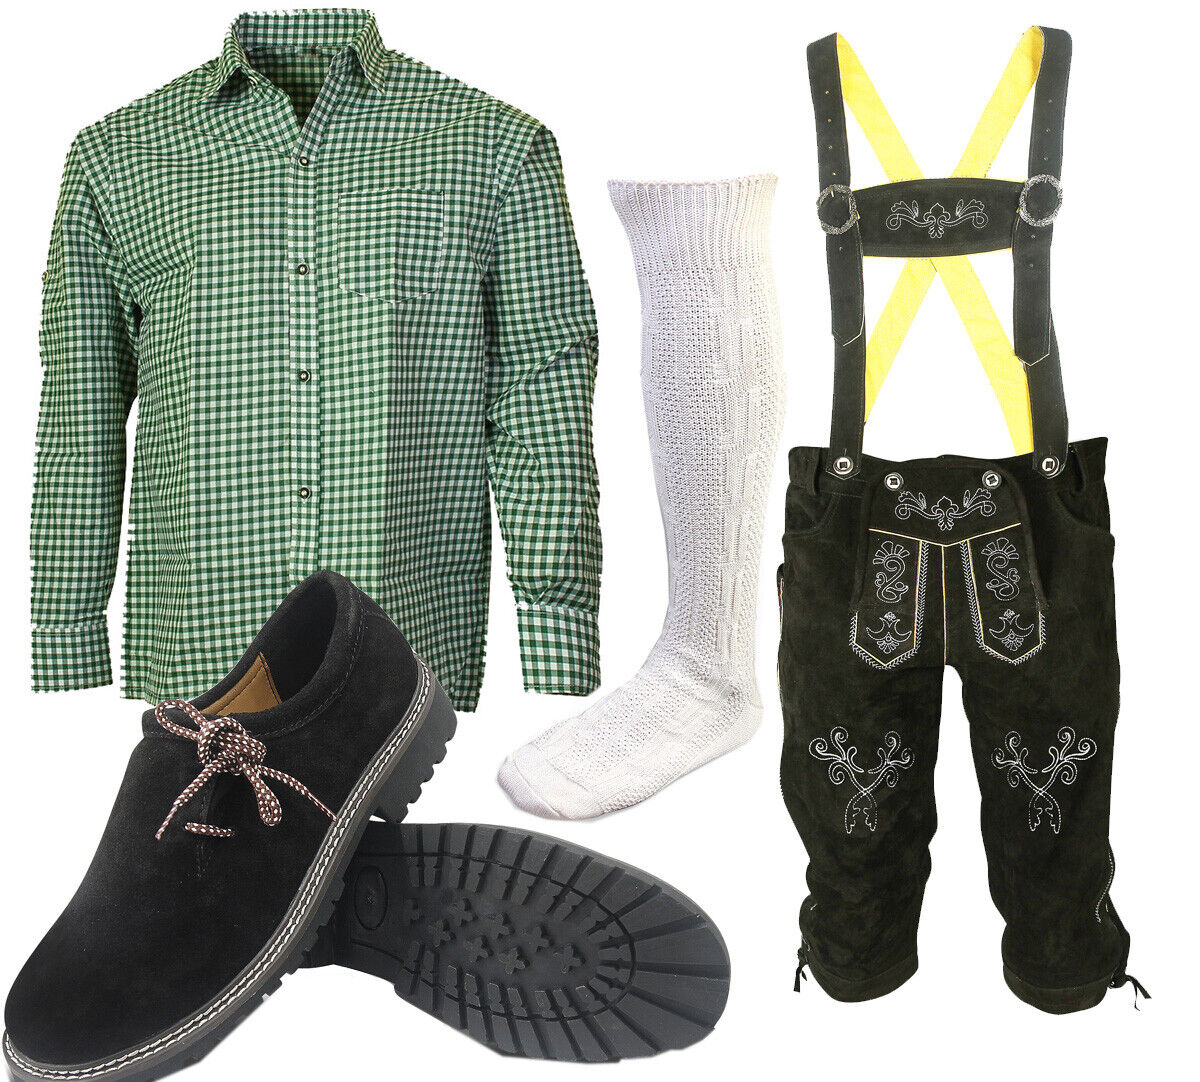 Traditional Costume Set Leather Trousers 6tlg With Trousers Shirt Shoes SHLGH04